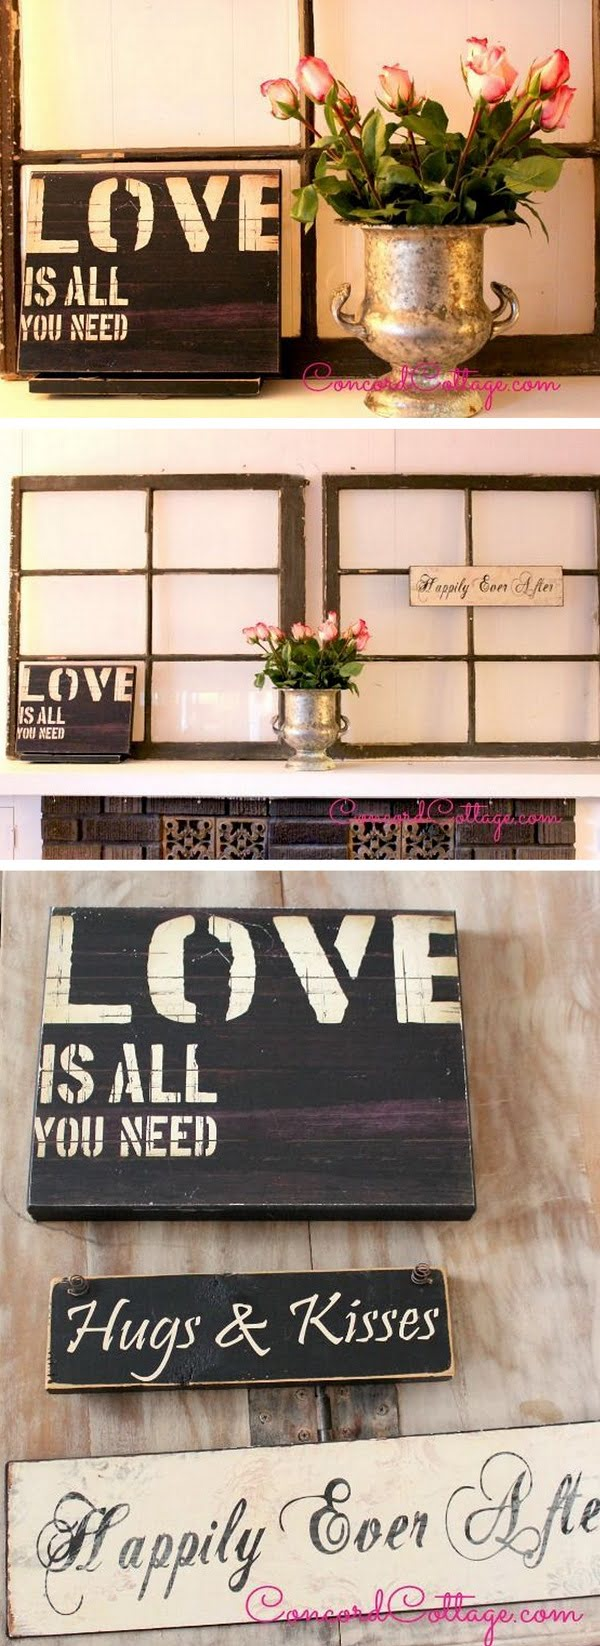 Check out the tutorial how to make a DIY decorative mantel from an old window